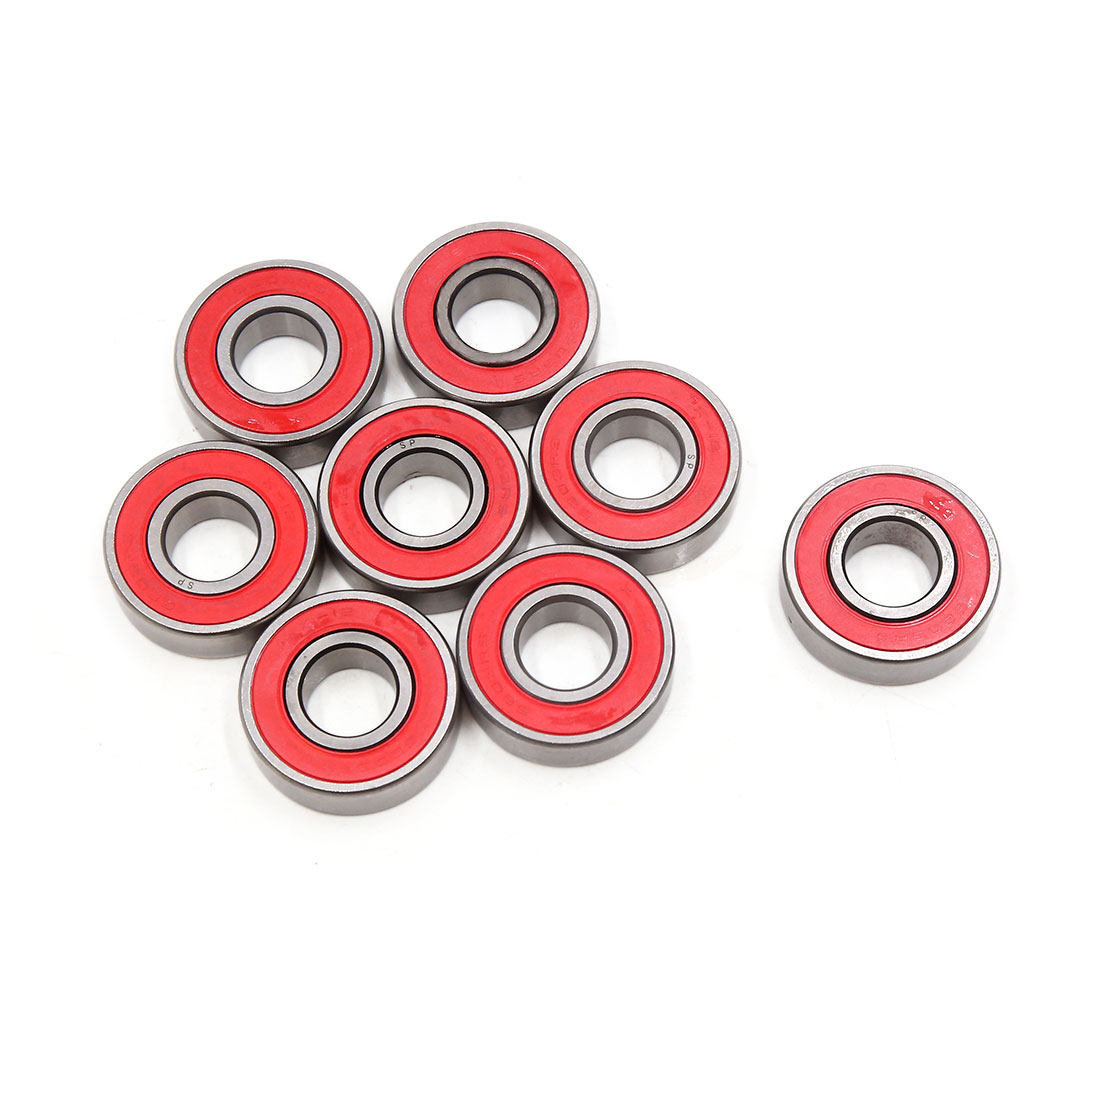 8pcs 6203-2RS Scooter Motorcycle Sealed Deep Groove Ball Bearing 40 x 17 x 12mm